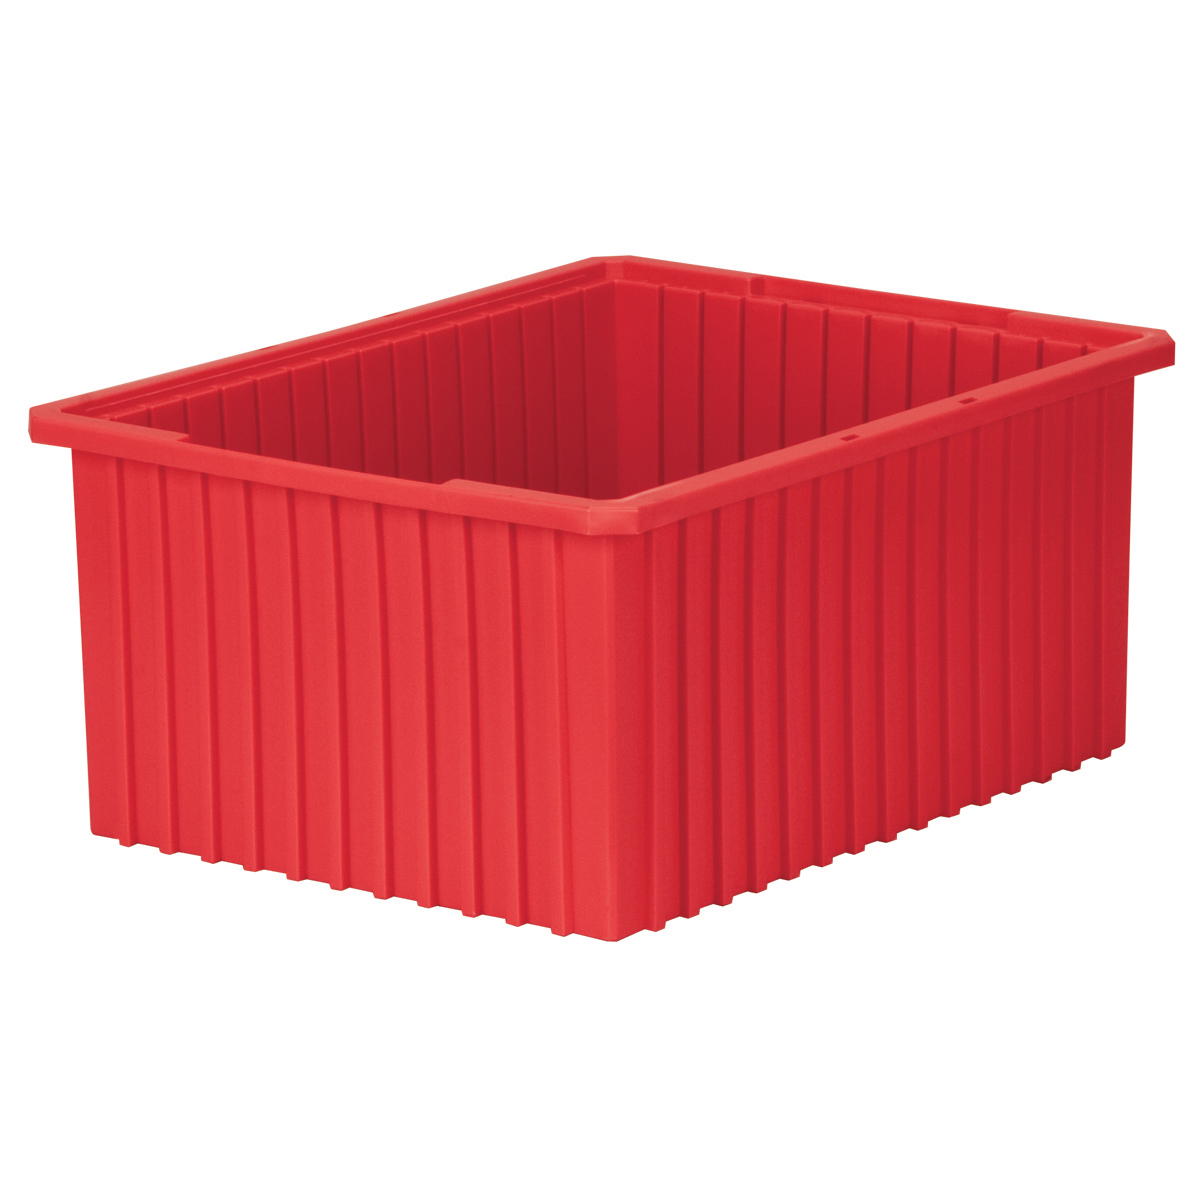 Akro-Grid Dividable Box 22-3/8 x 17-3/8 x 10, Red (33220RED).  This item sold in carton quantities of 2.